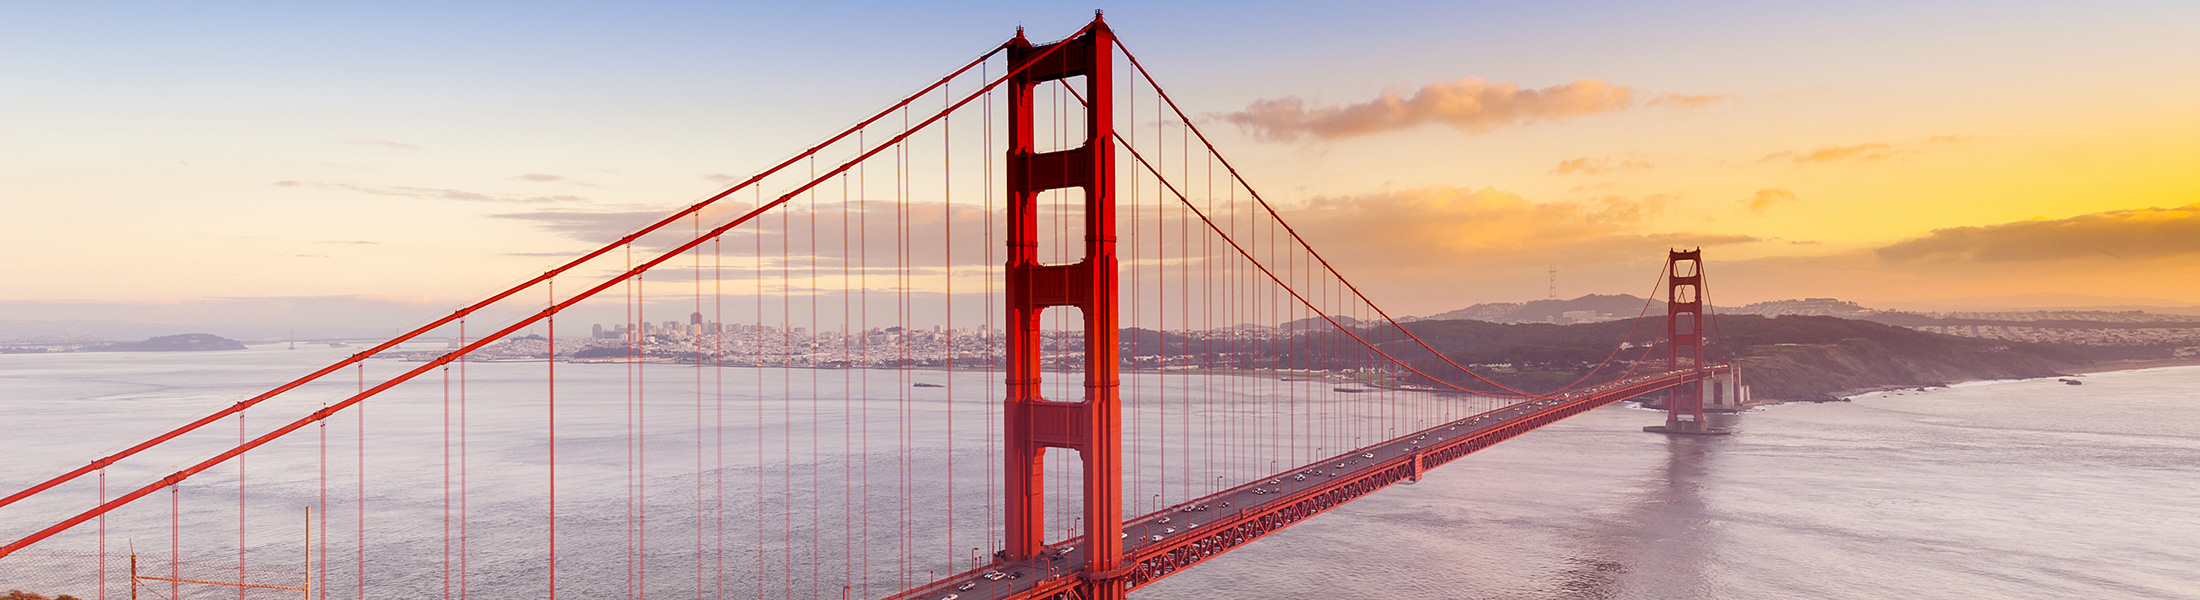 Golden Gate Bridge in North America